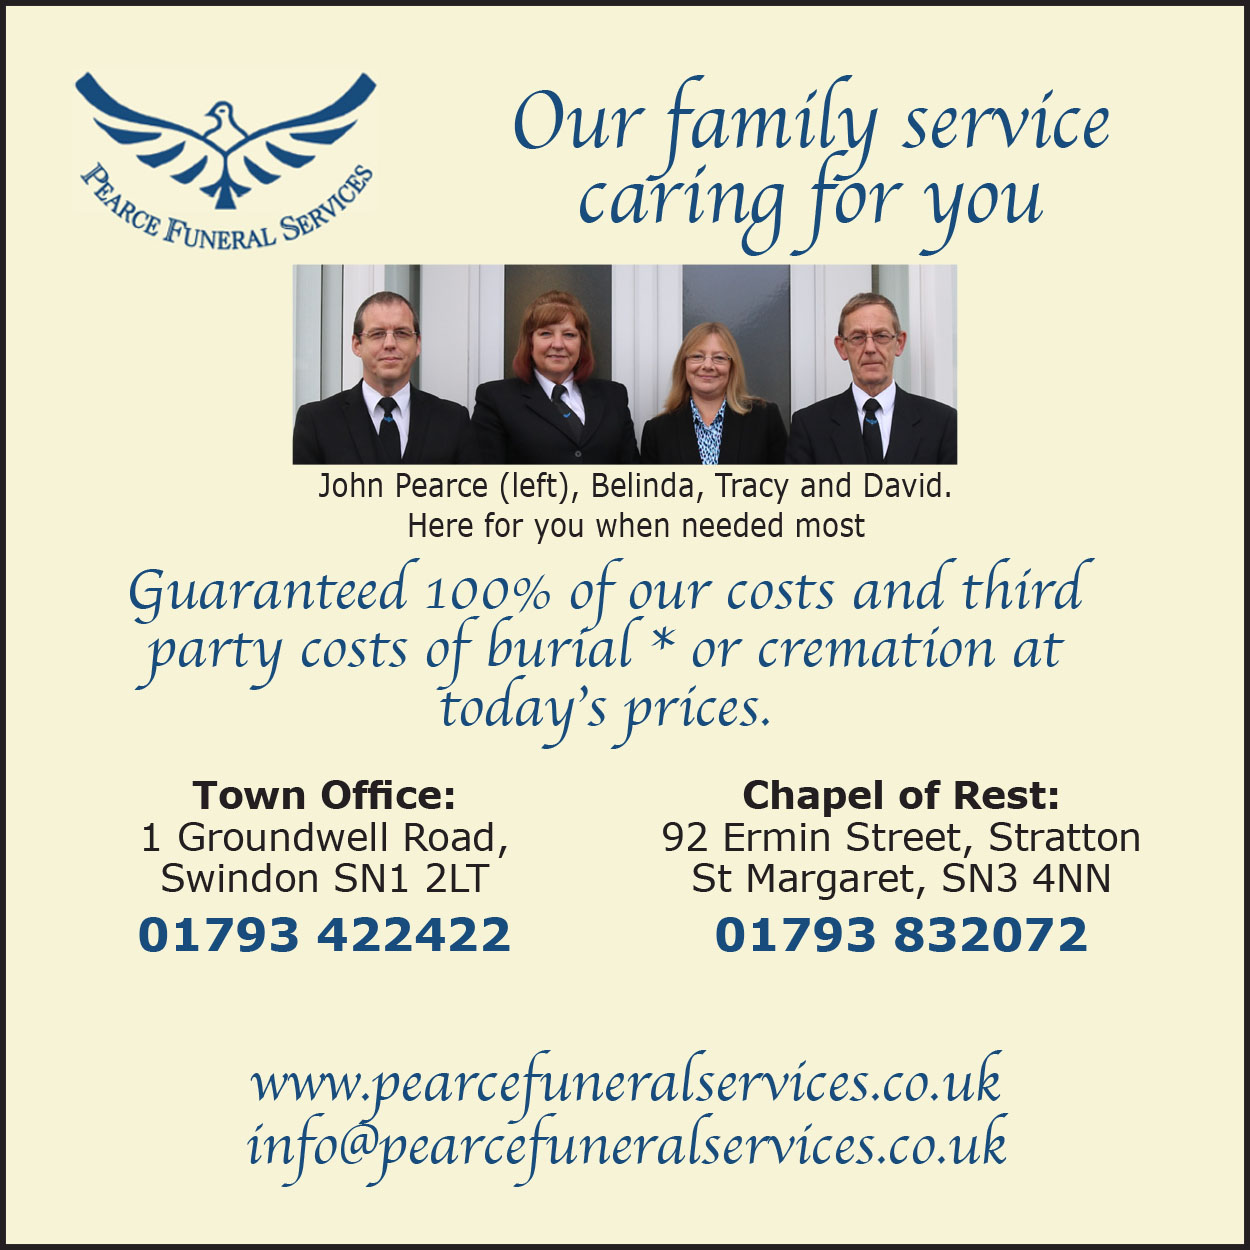 Pearce Funeral Services - Leave till July 21